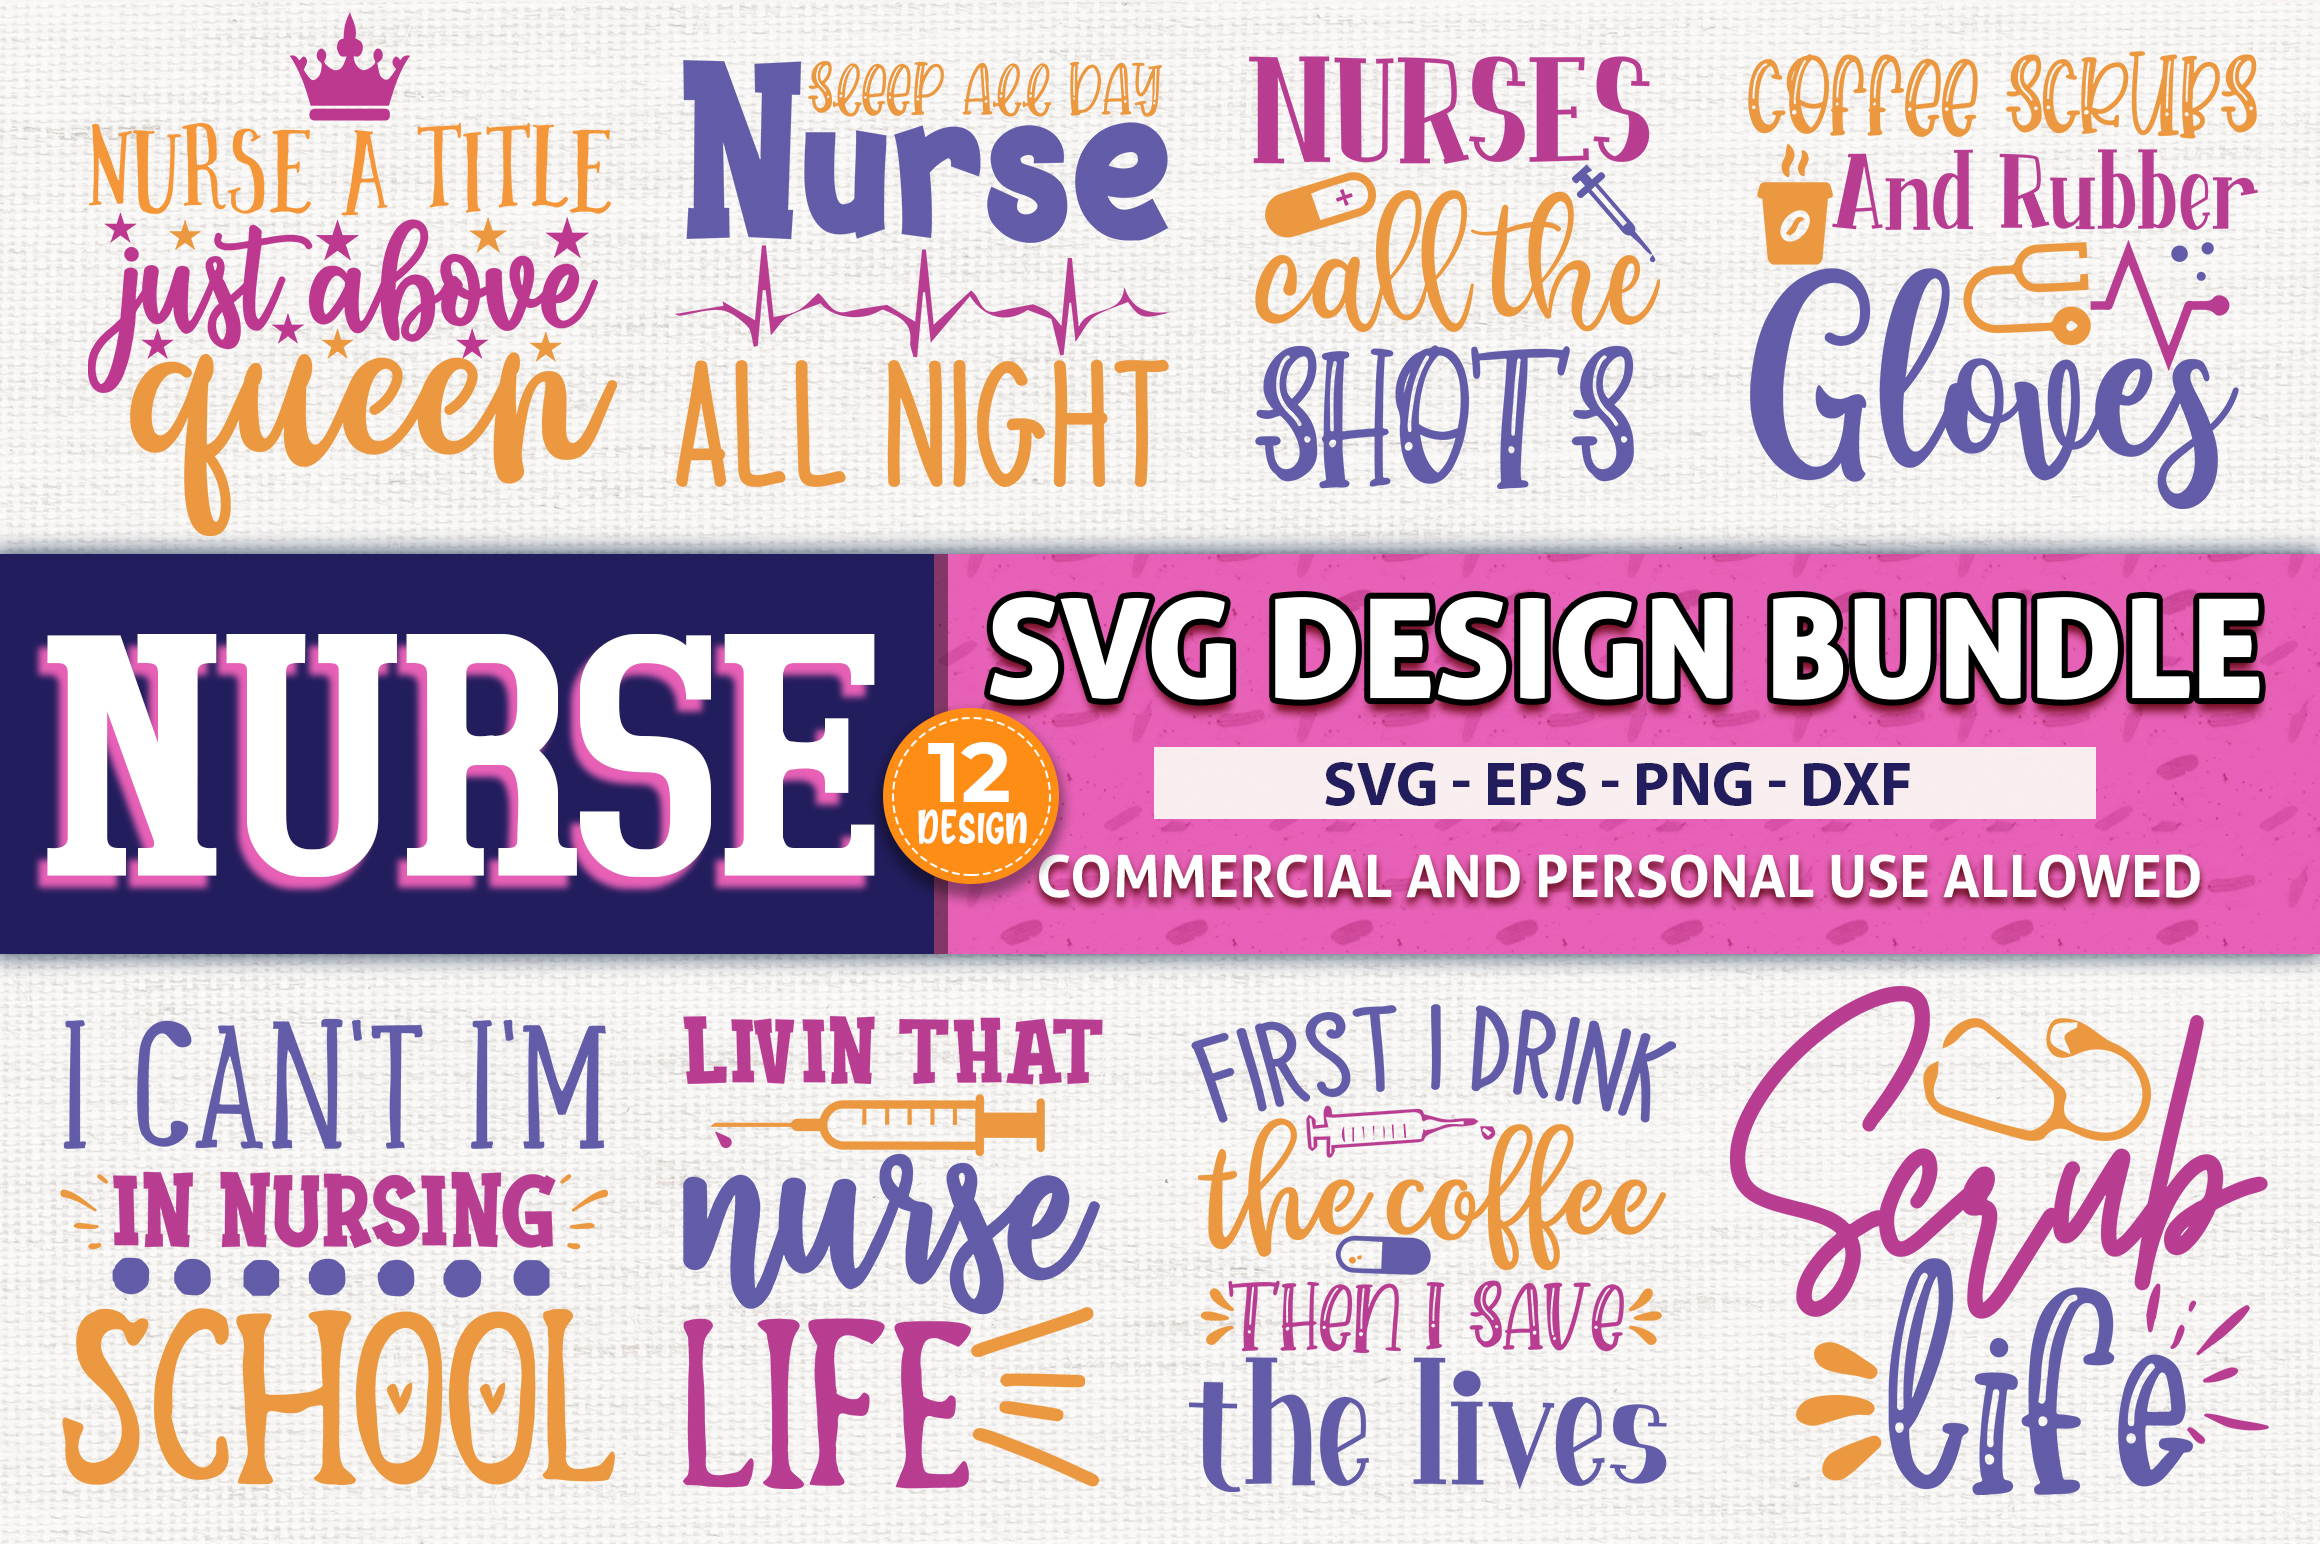 510 SVG DESIGN THE MIGHTY BUNDLE |32 DIFFERENT BUNDLES example image 24